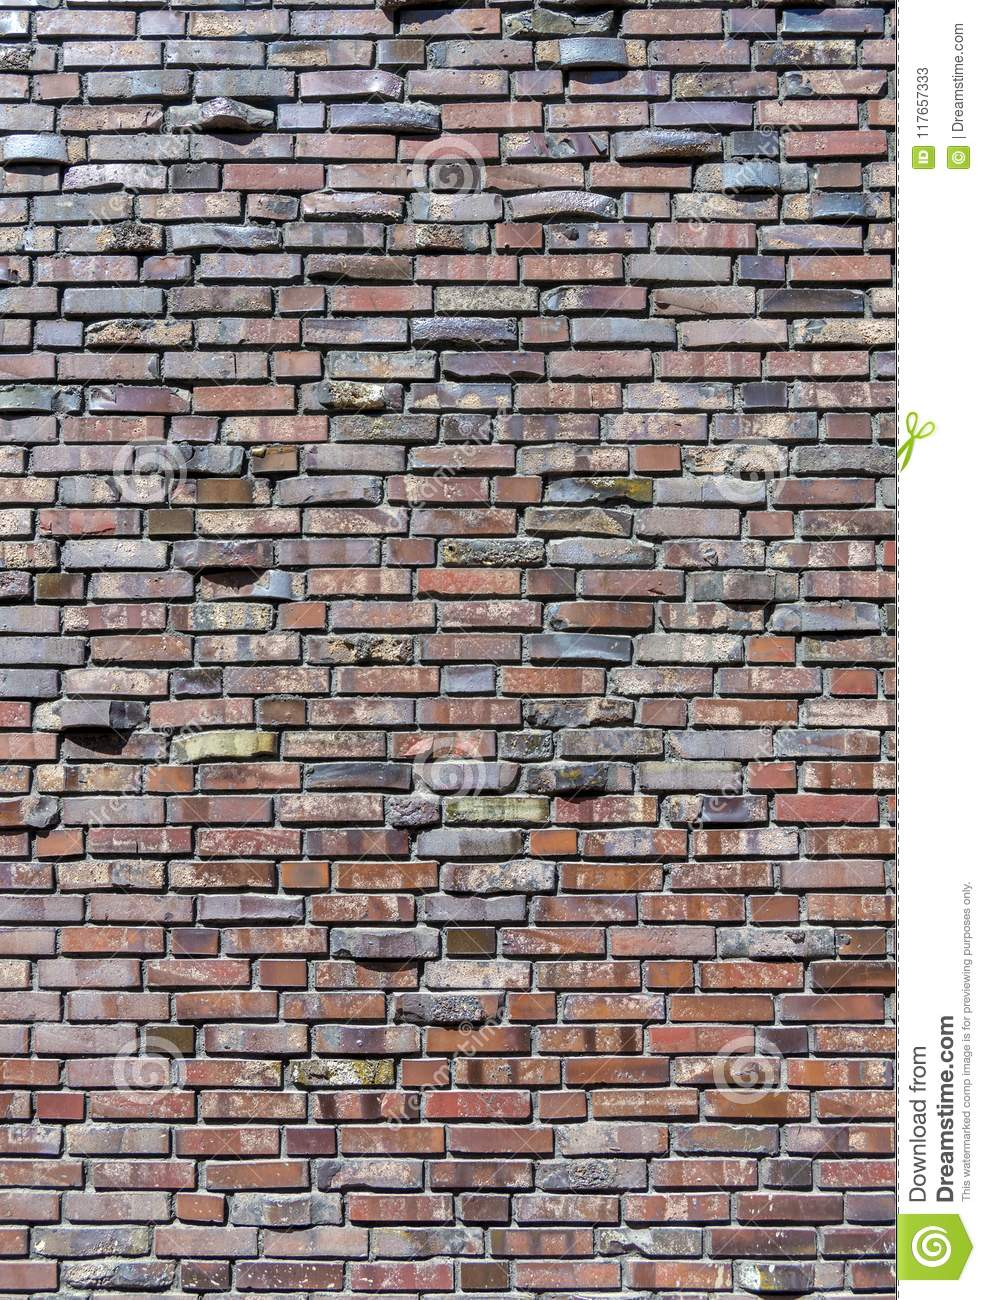 Most Of The Brick Wall Decorative Masonry Using Curves Non